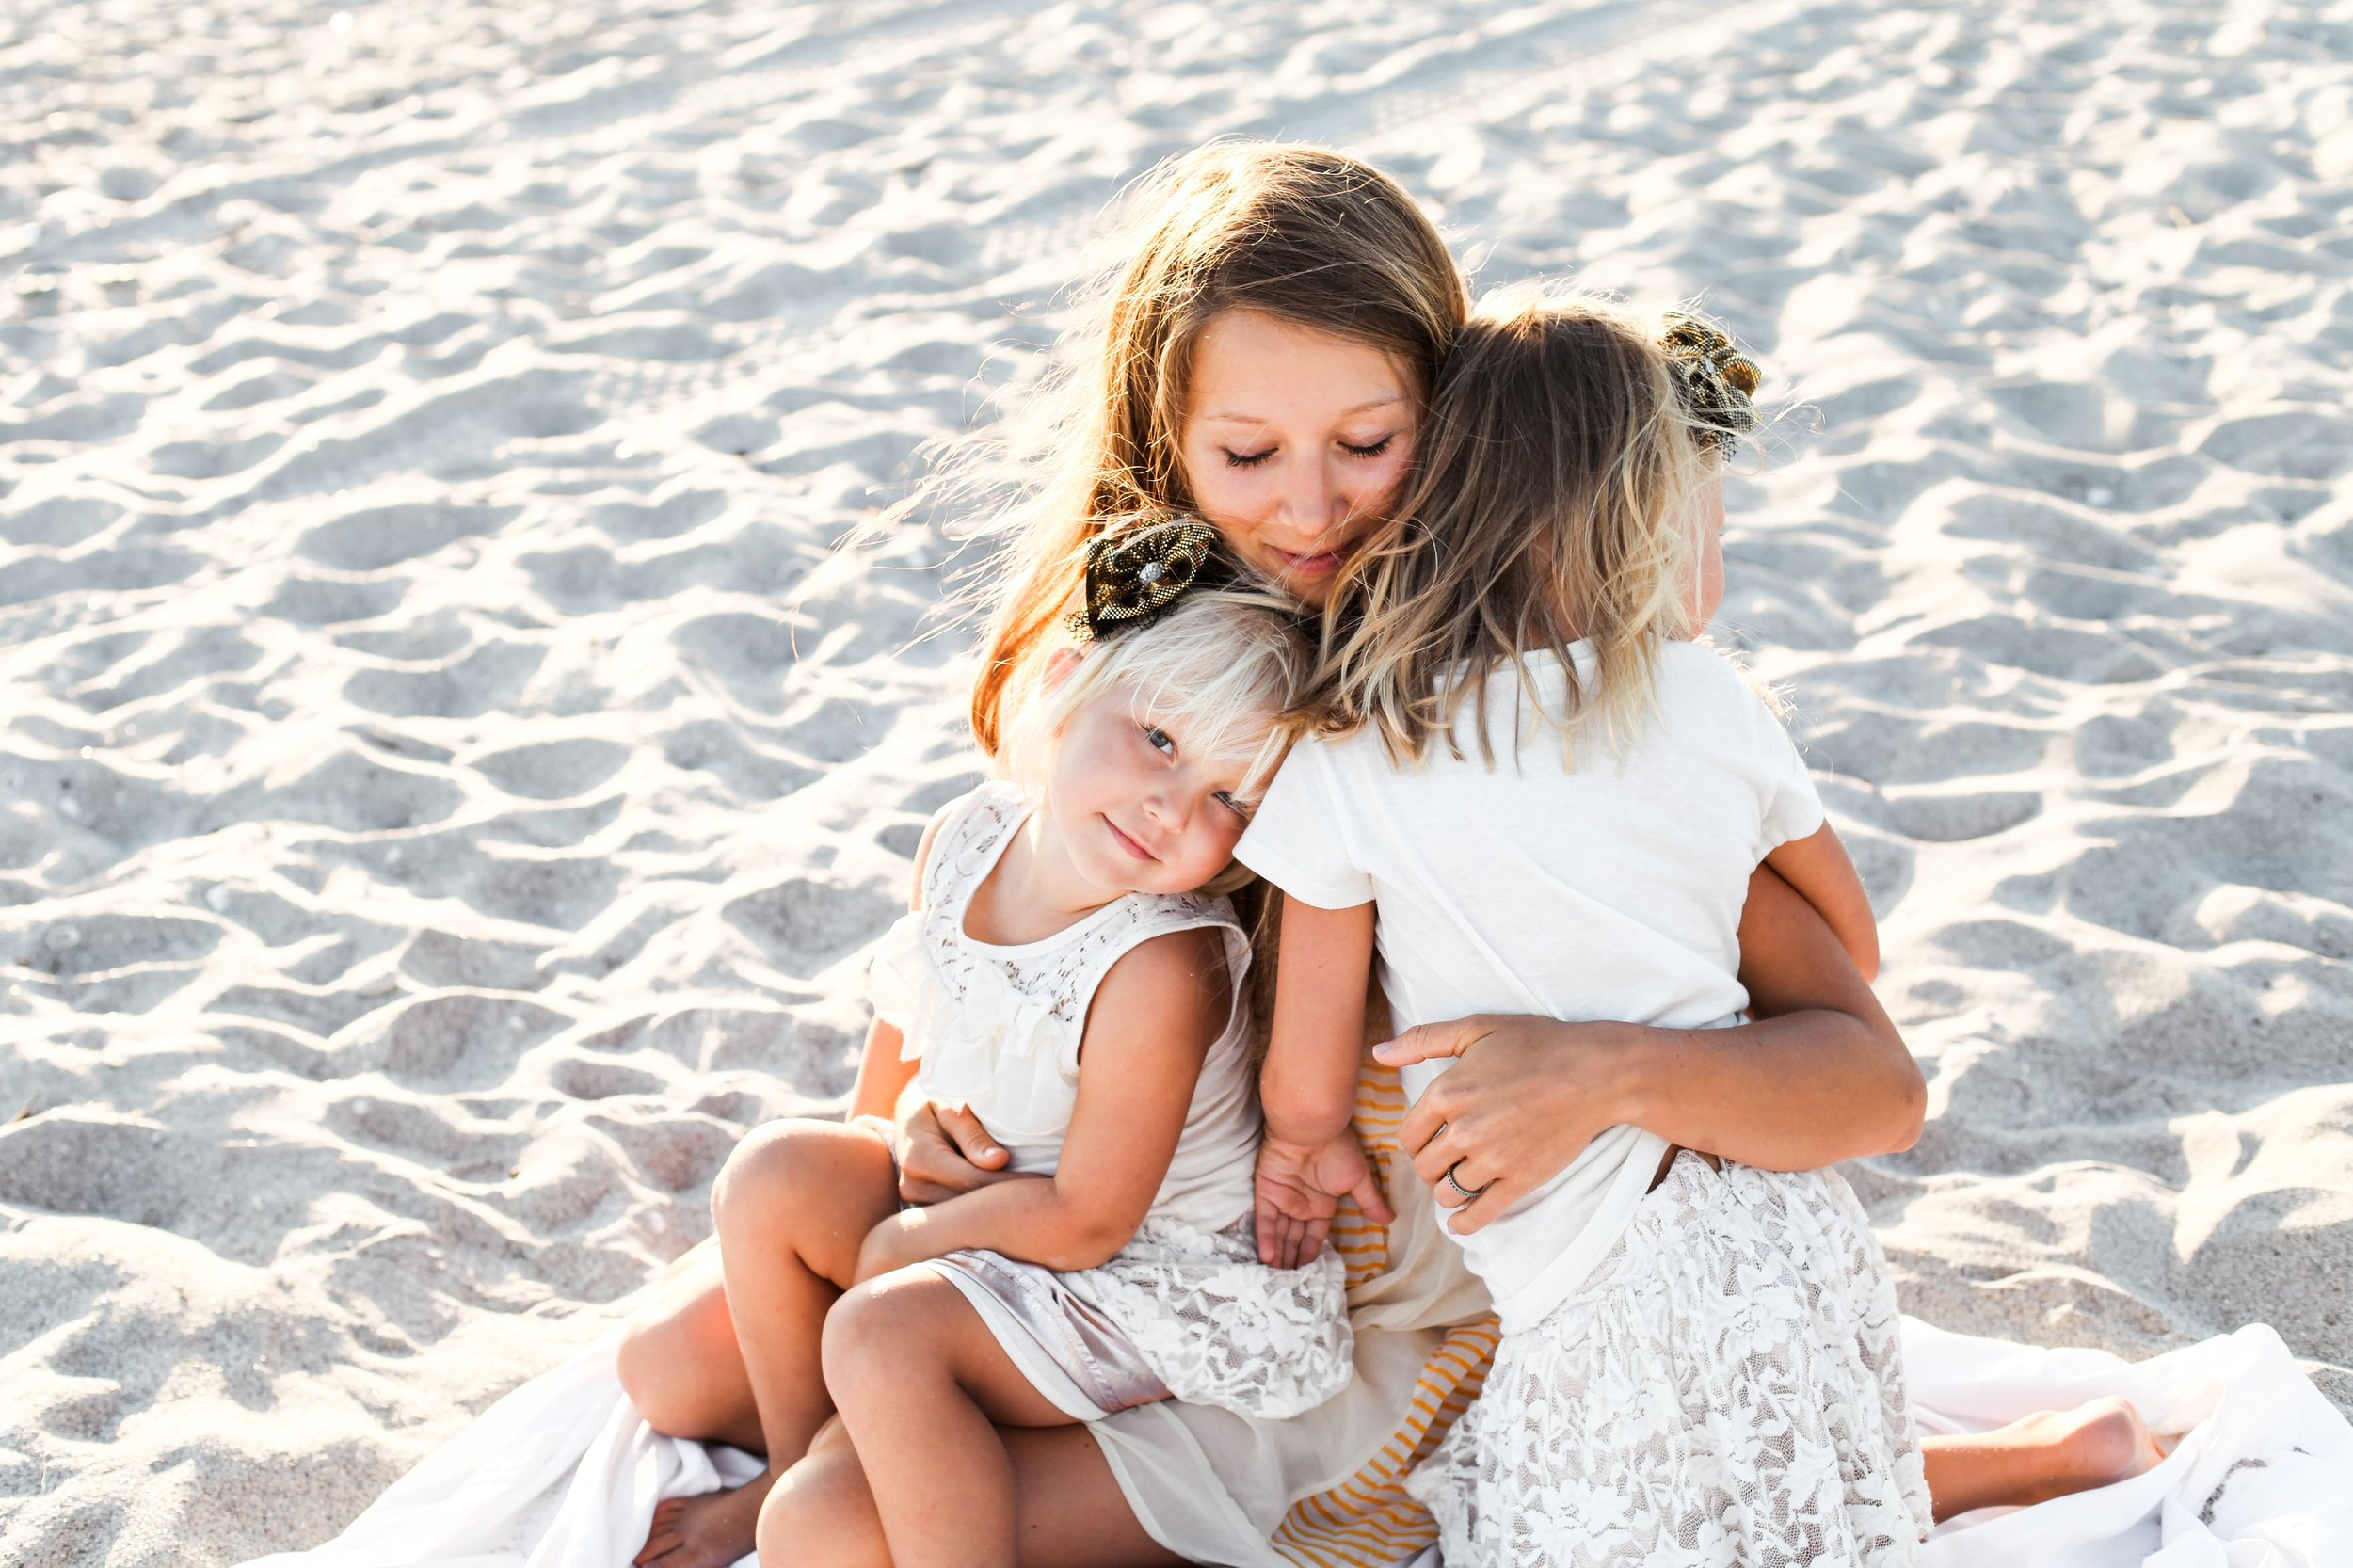 Sunset Beach Lifestyle Family Portraits in Florida by Destionation Photographer Janelle Elaine Photography Seattle WA.jpg